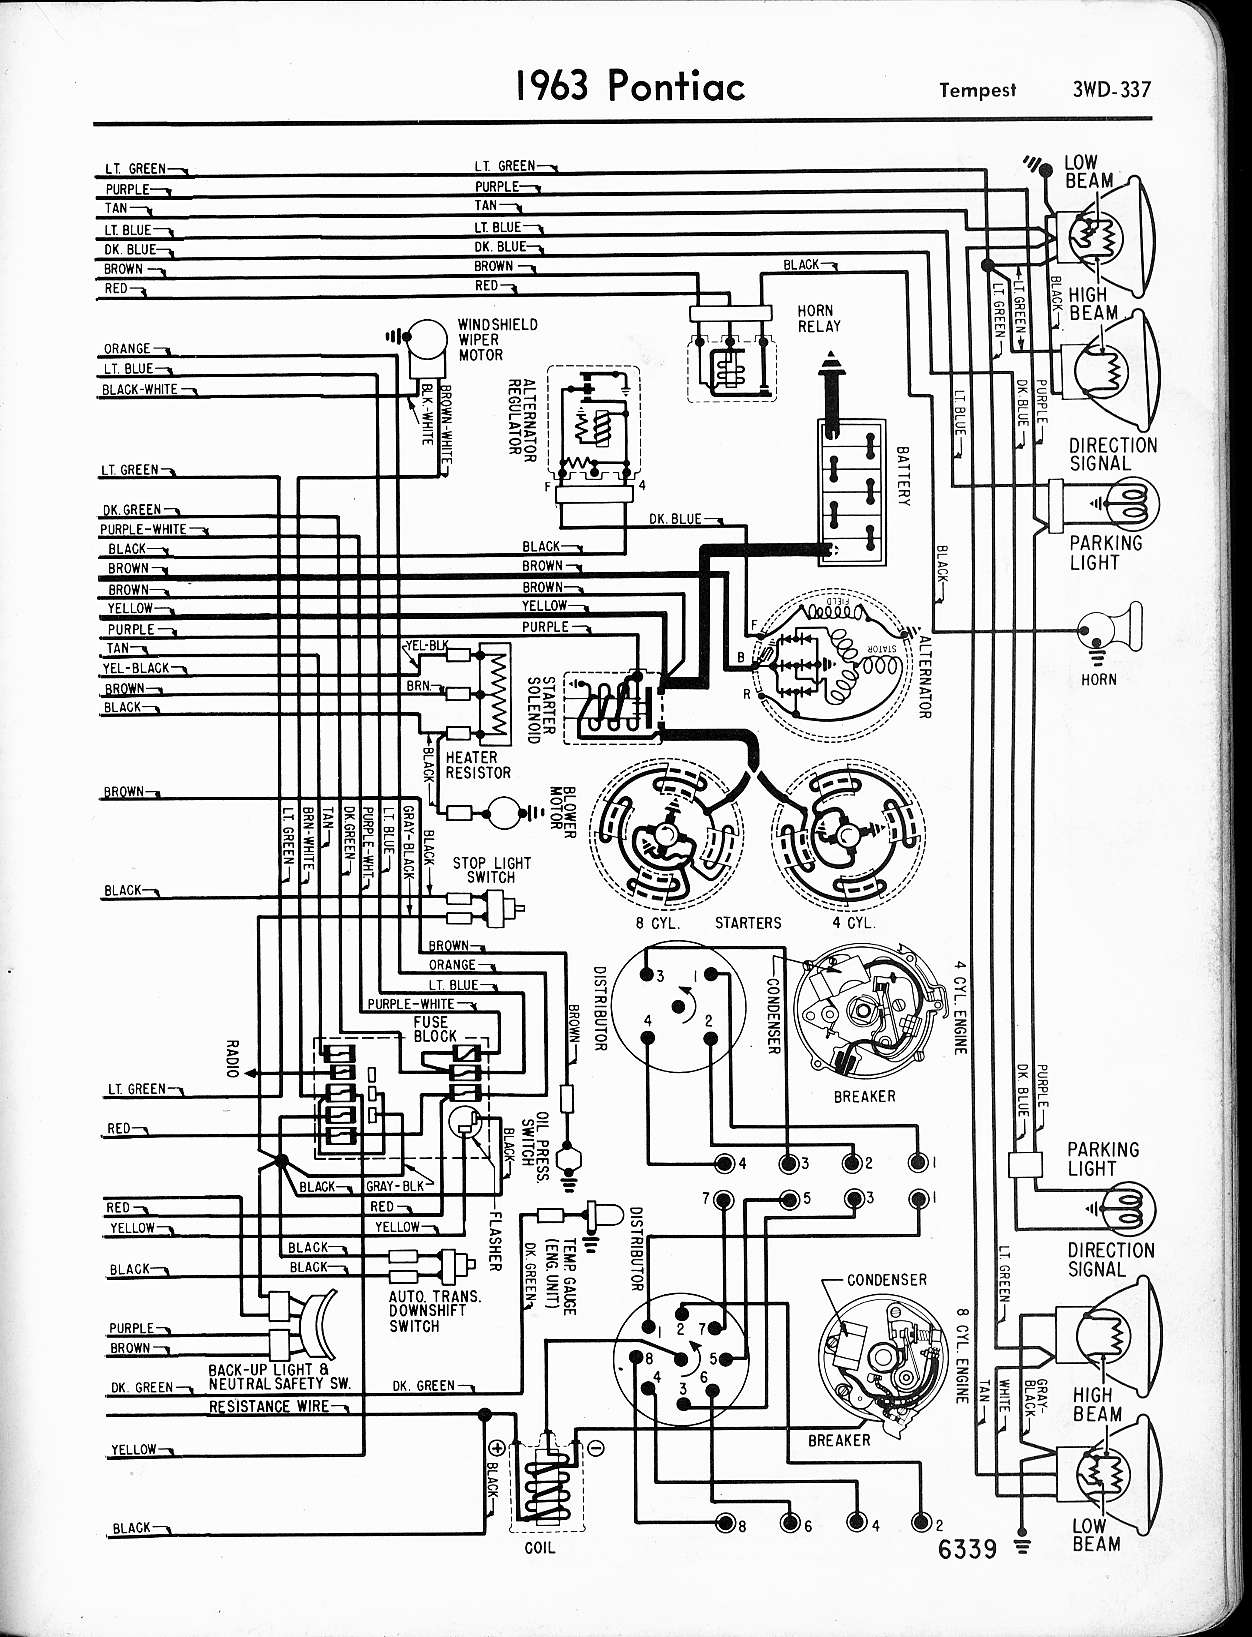 1968 Gto Fuse Box - Wiring Diagram Progresif  Dodge Charger Wiring Schematic on dodge charger diagram, dodge dakota wiring schematic, dodge diesel wiring schematic, car charger schematic, dodge ram wiring schematic, dodge charger bug, dodge charger relay, dodge charger throttle position sensor, dodge caravan wiring schematic, dodge wiring diagrams, dodge charger speaker, dodge charger turn signal, dodge challenger wiring schematic, dodge durango wiring schematic, dodge dart wiring schematic, dodge charger voltage regulator, dodge charger fuse, dodge charger brake light, dodge 440 wiring schematic, dodge neon wiring schematic,